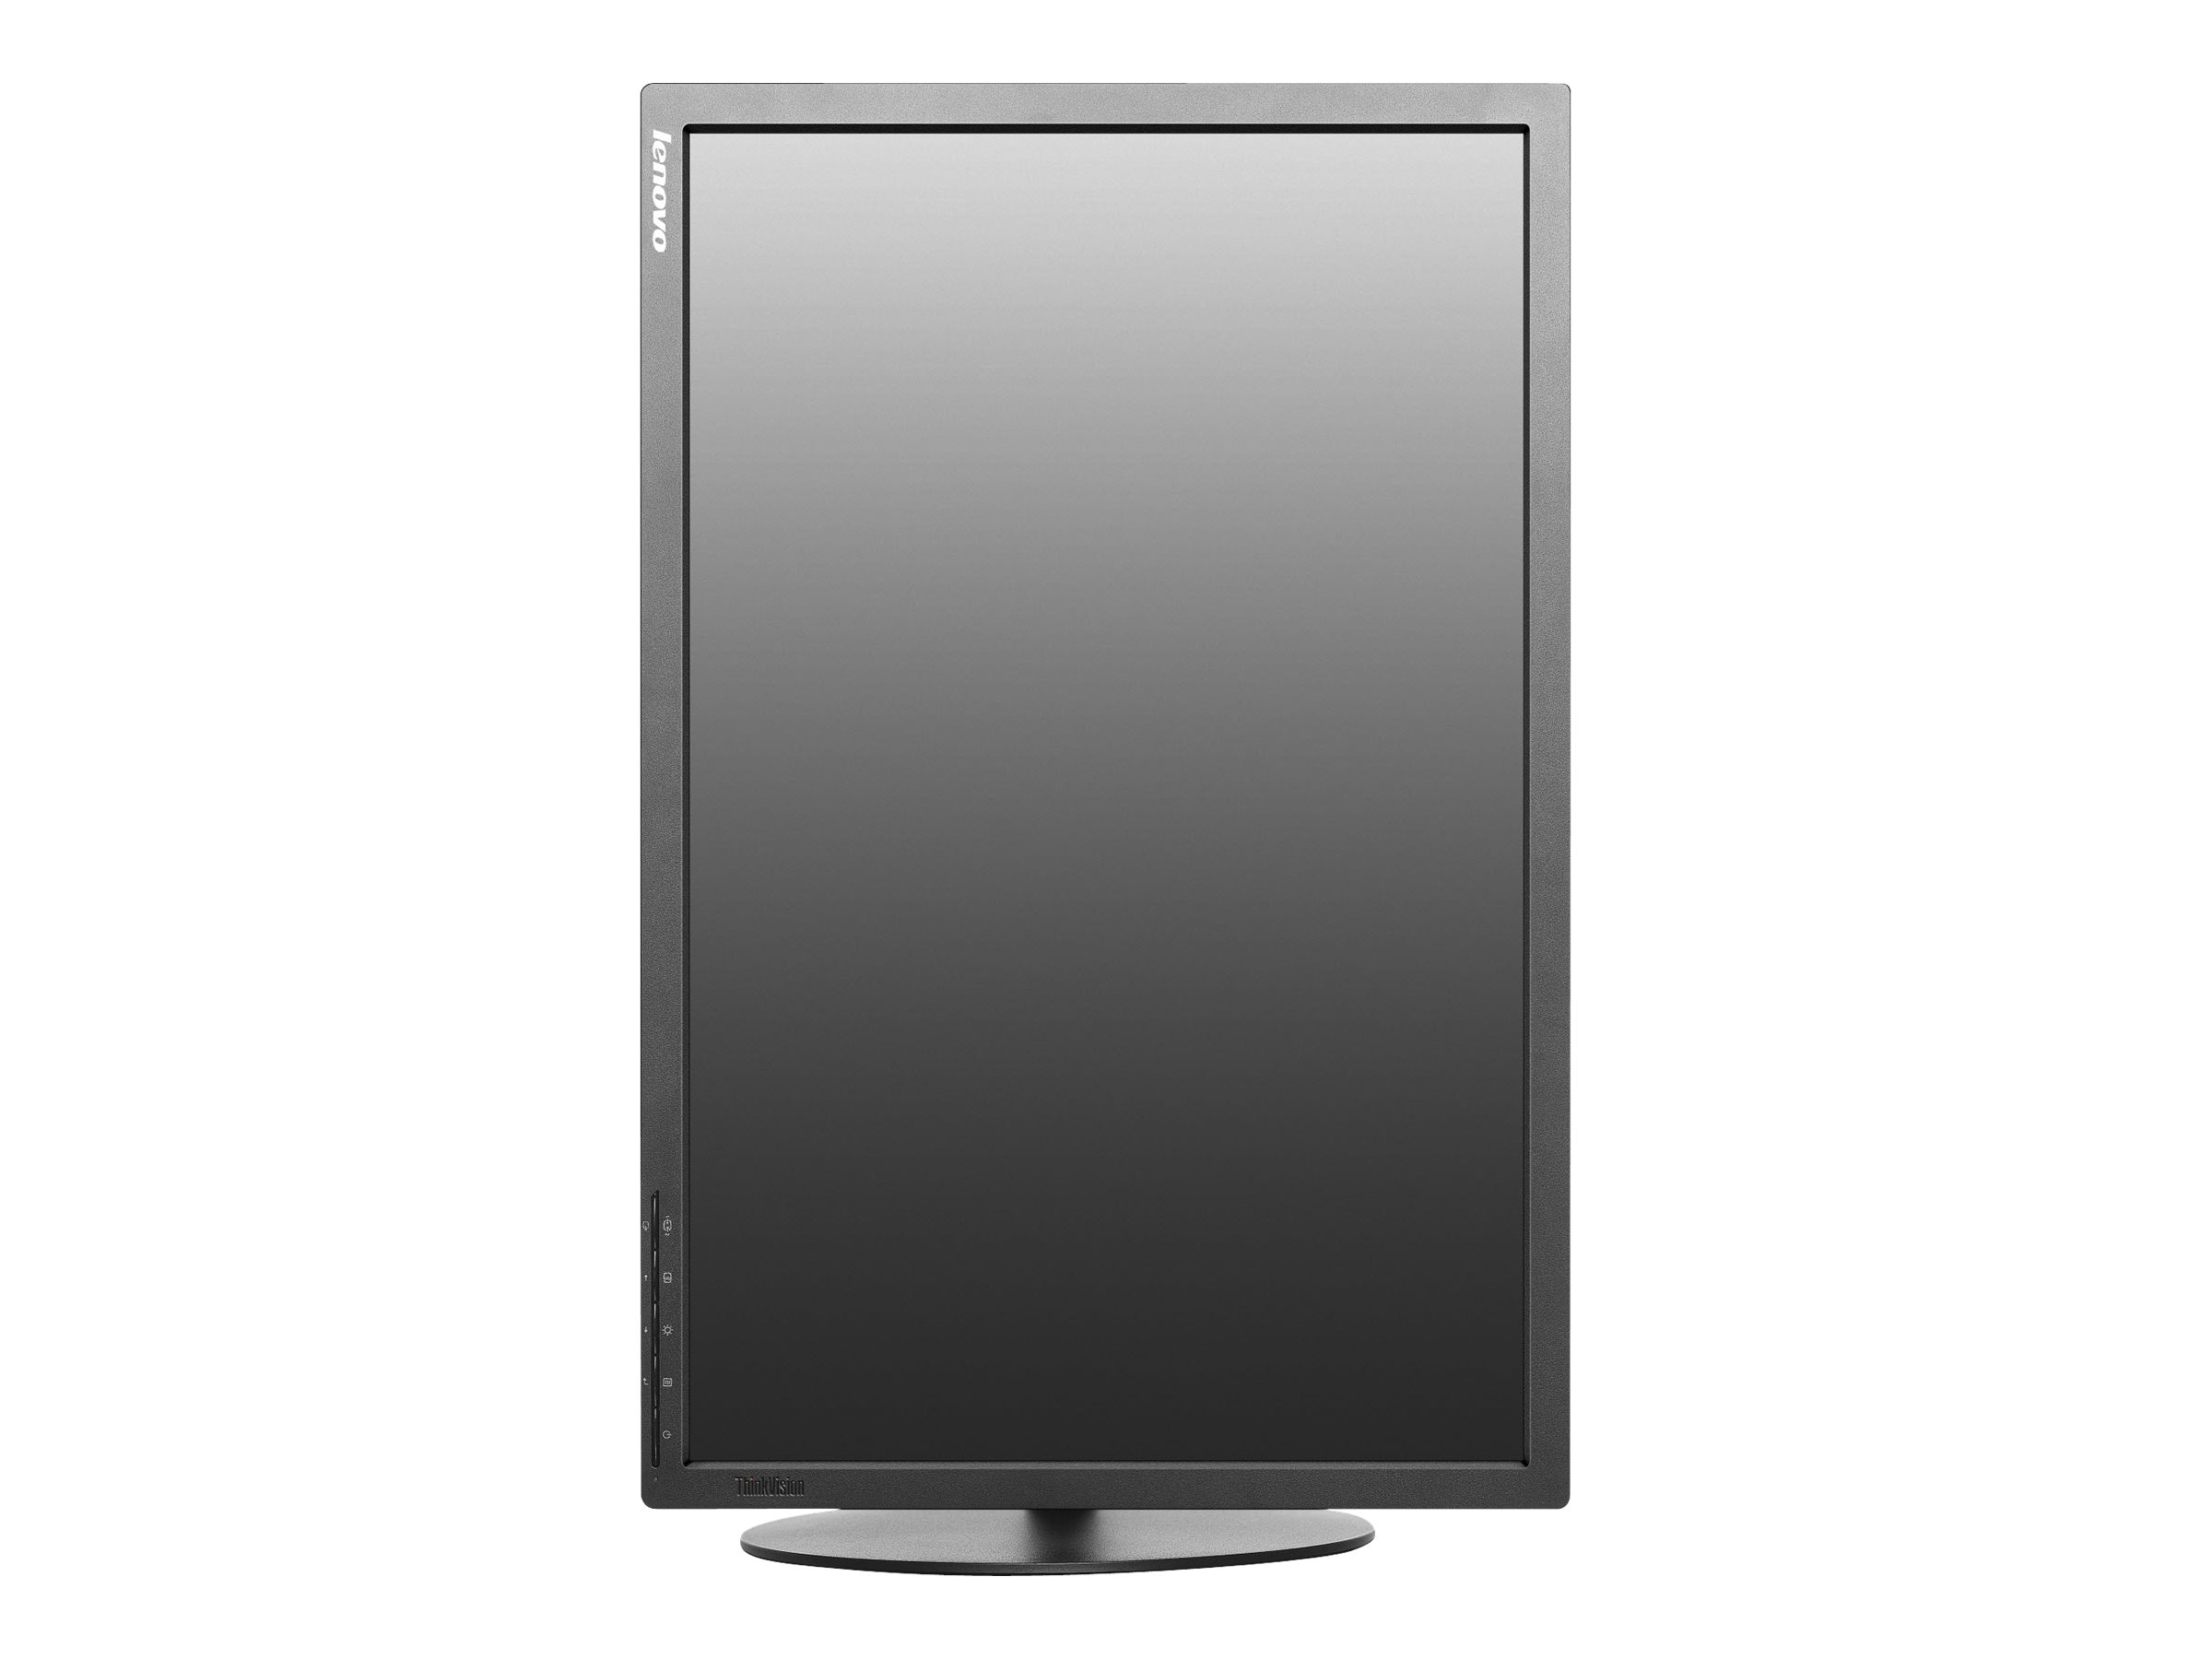 Lenovo 24 T2454p LED-LCD Monitor, Black, 60C9MAR1US, 19021371, Monitors - LED-LCD